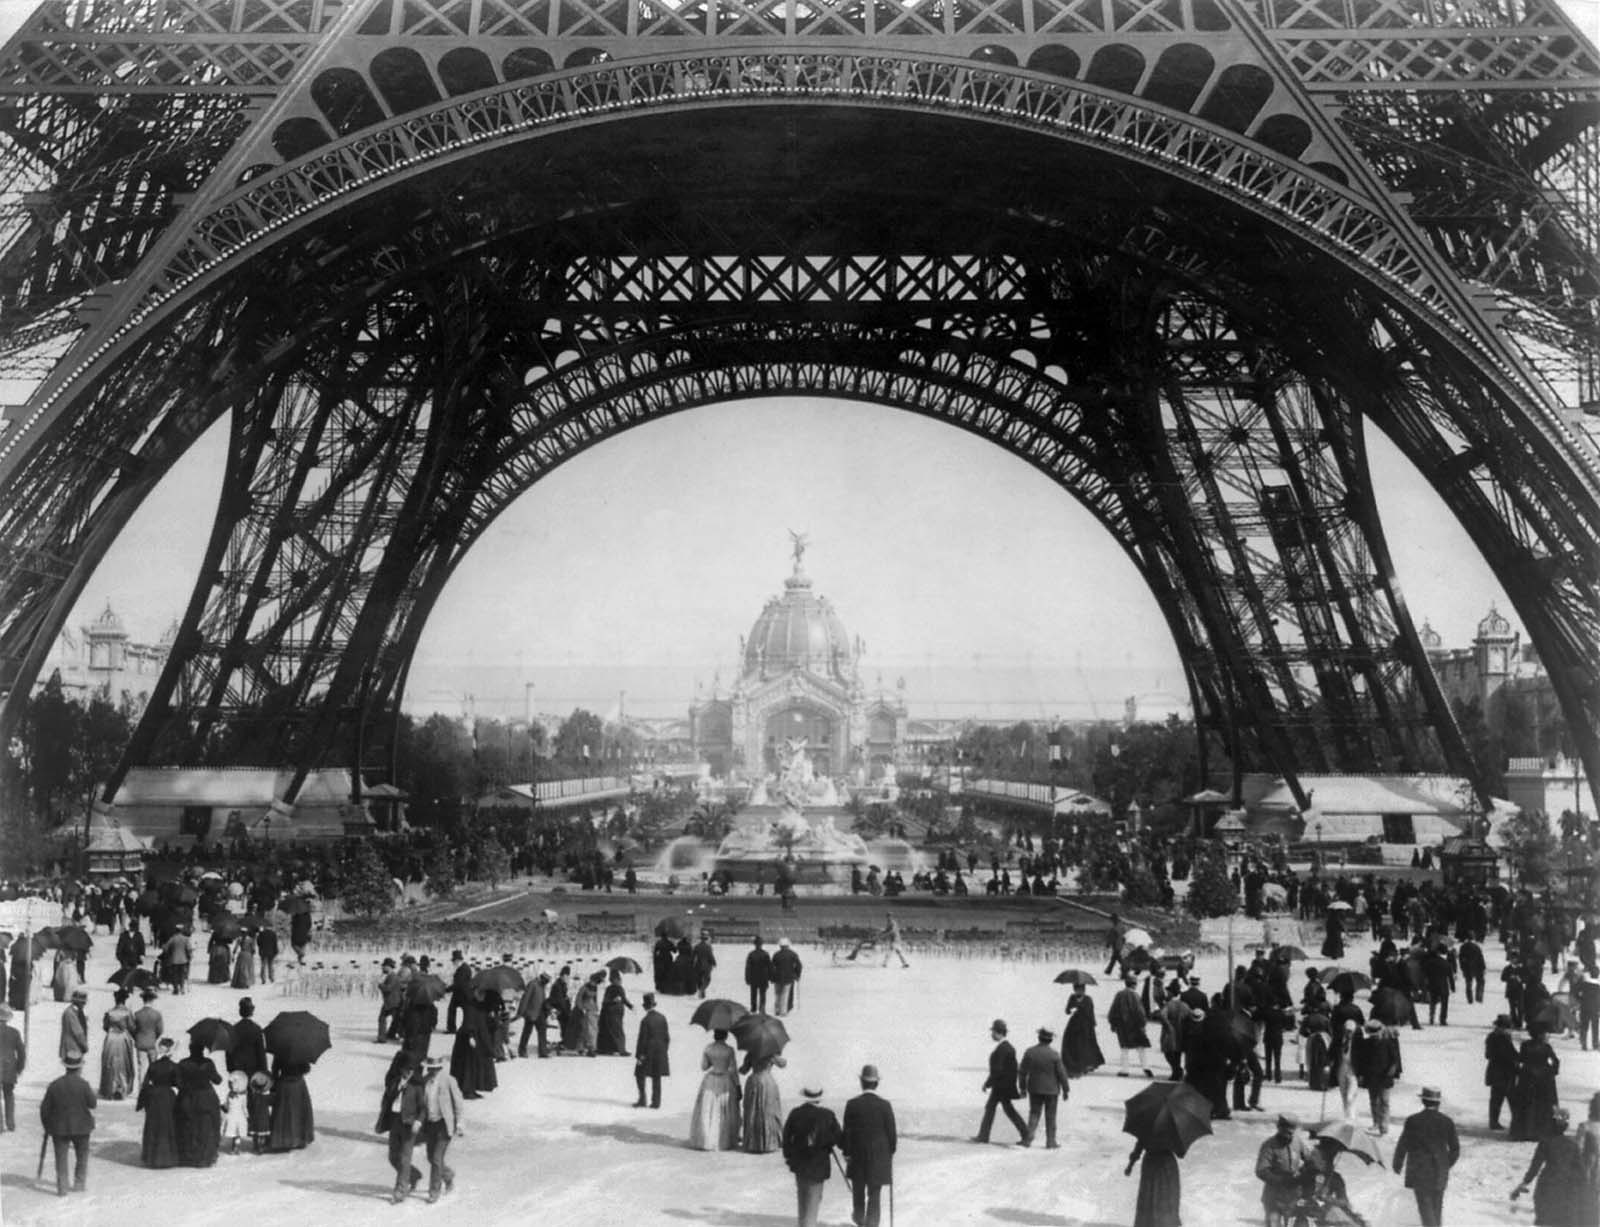 Paris Exposition, view from ground level of the Eiffel tower with Parisians promenading, 1889.